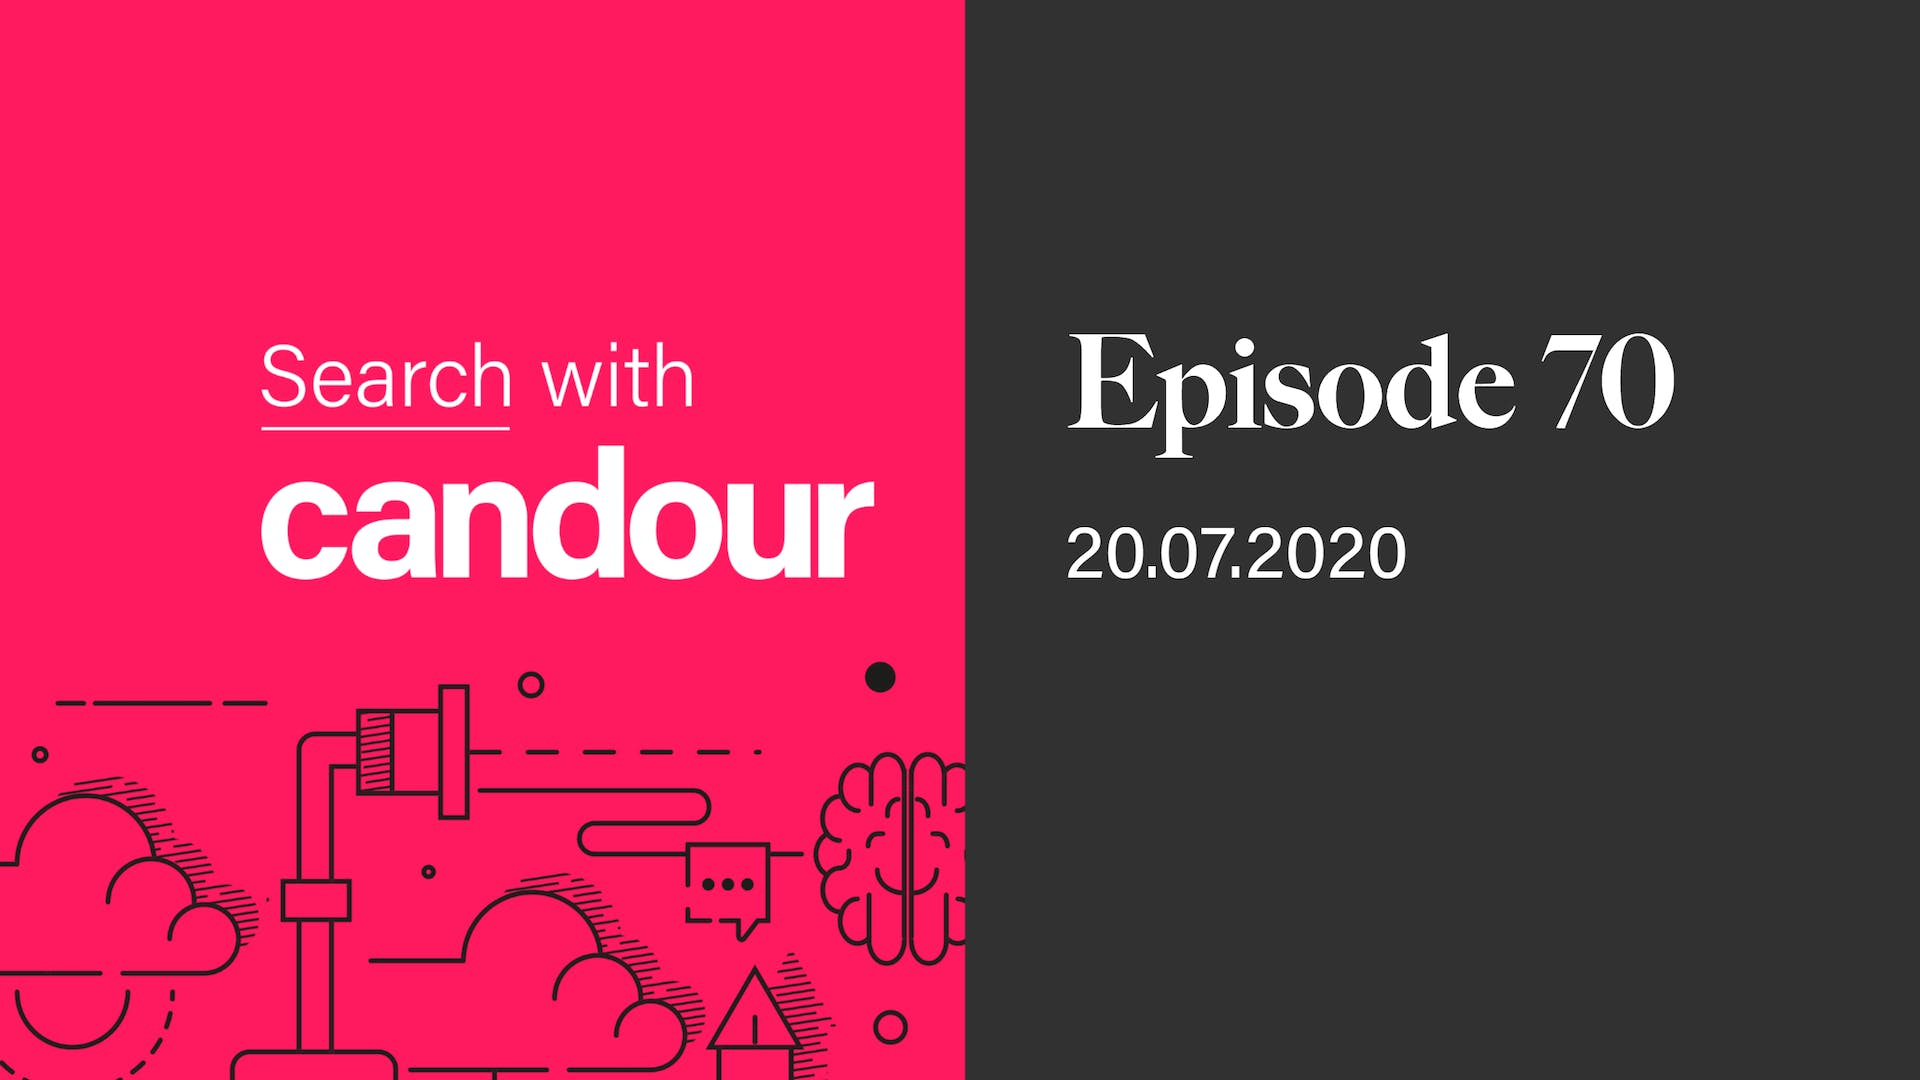 Search with Candour - Episode 70